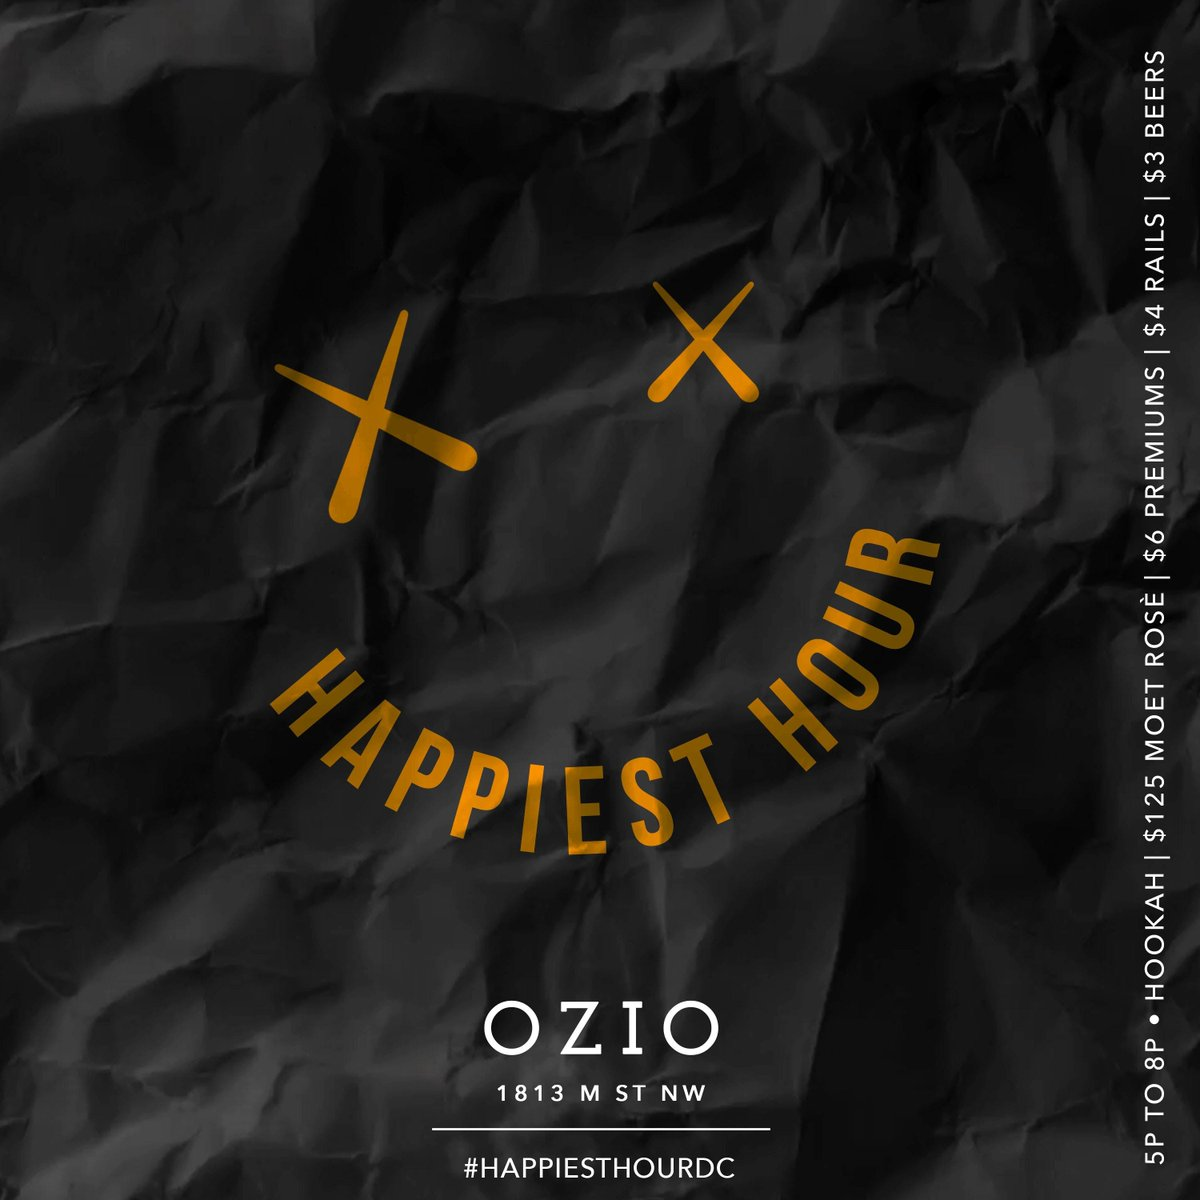 The 925 Apartments On Twitter Friday Is Everyones Favorite Day Of Week So Celebrate Accordingly Are You Ready For HappiestHourDC Ozios